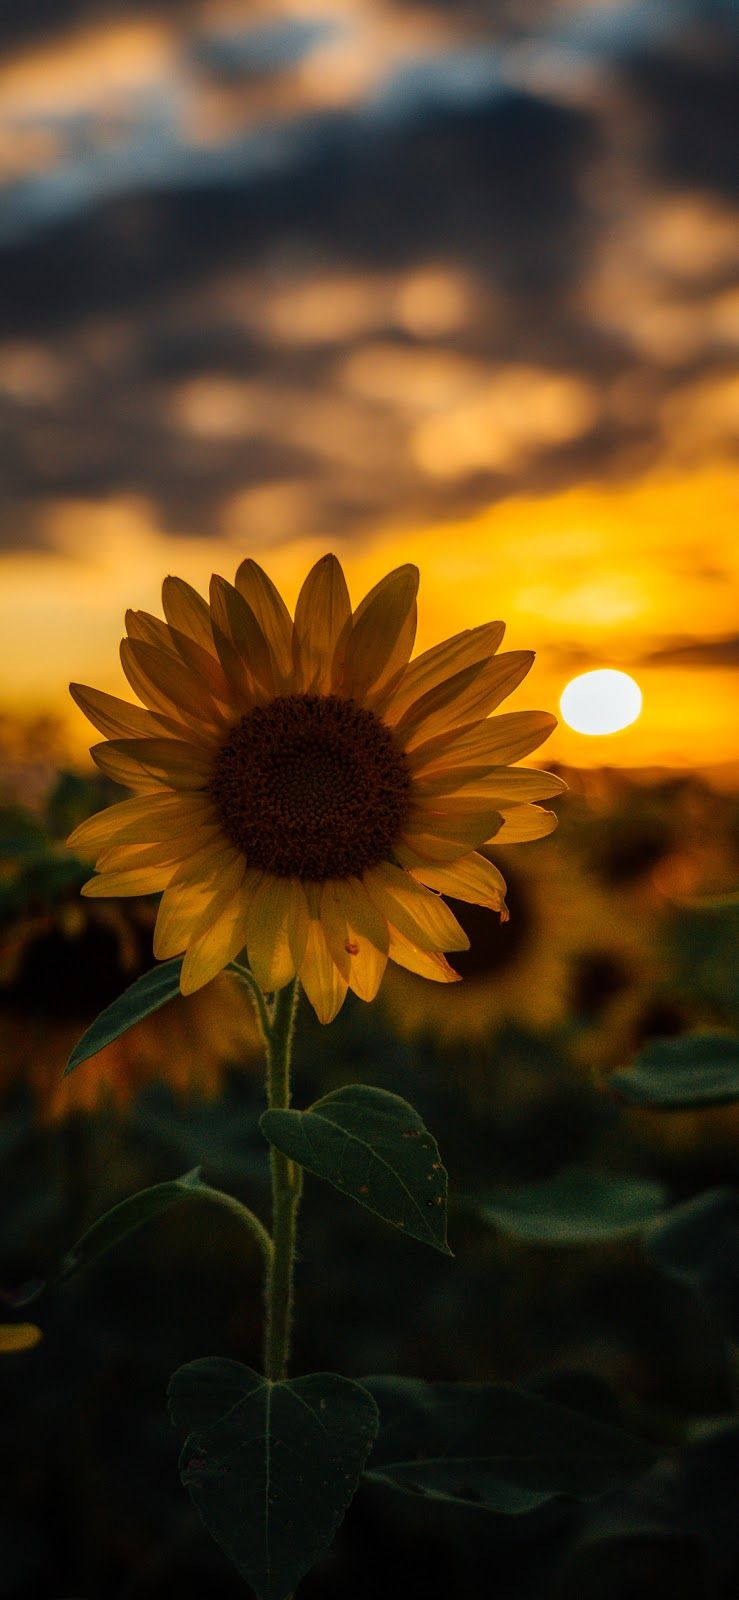 Sunflower Wallpaper Iphone X Wallpaper Iphone Android Background Followme Sunflower Iphone Wallpaper Sunflower Wallpaper Beautiful Wallpapers